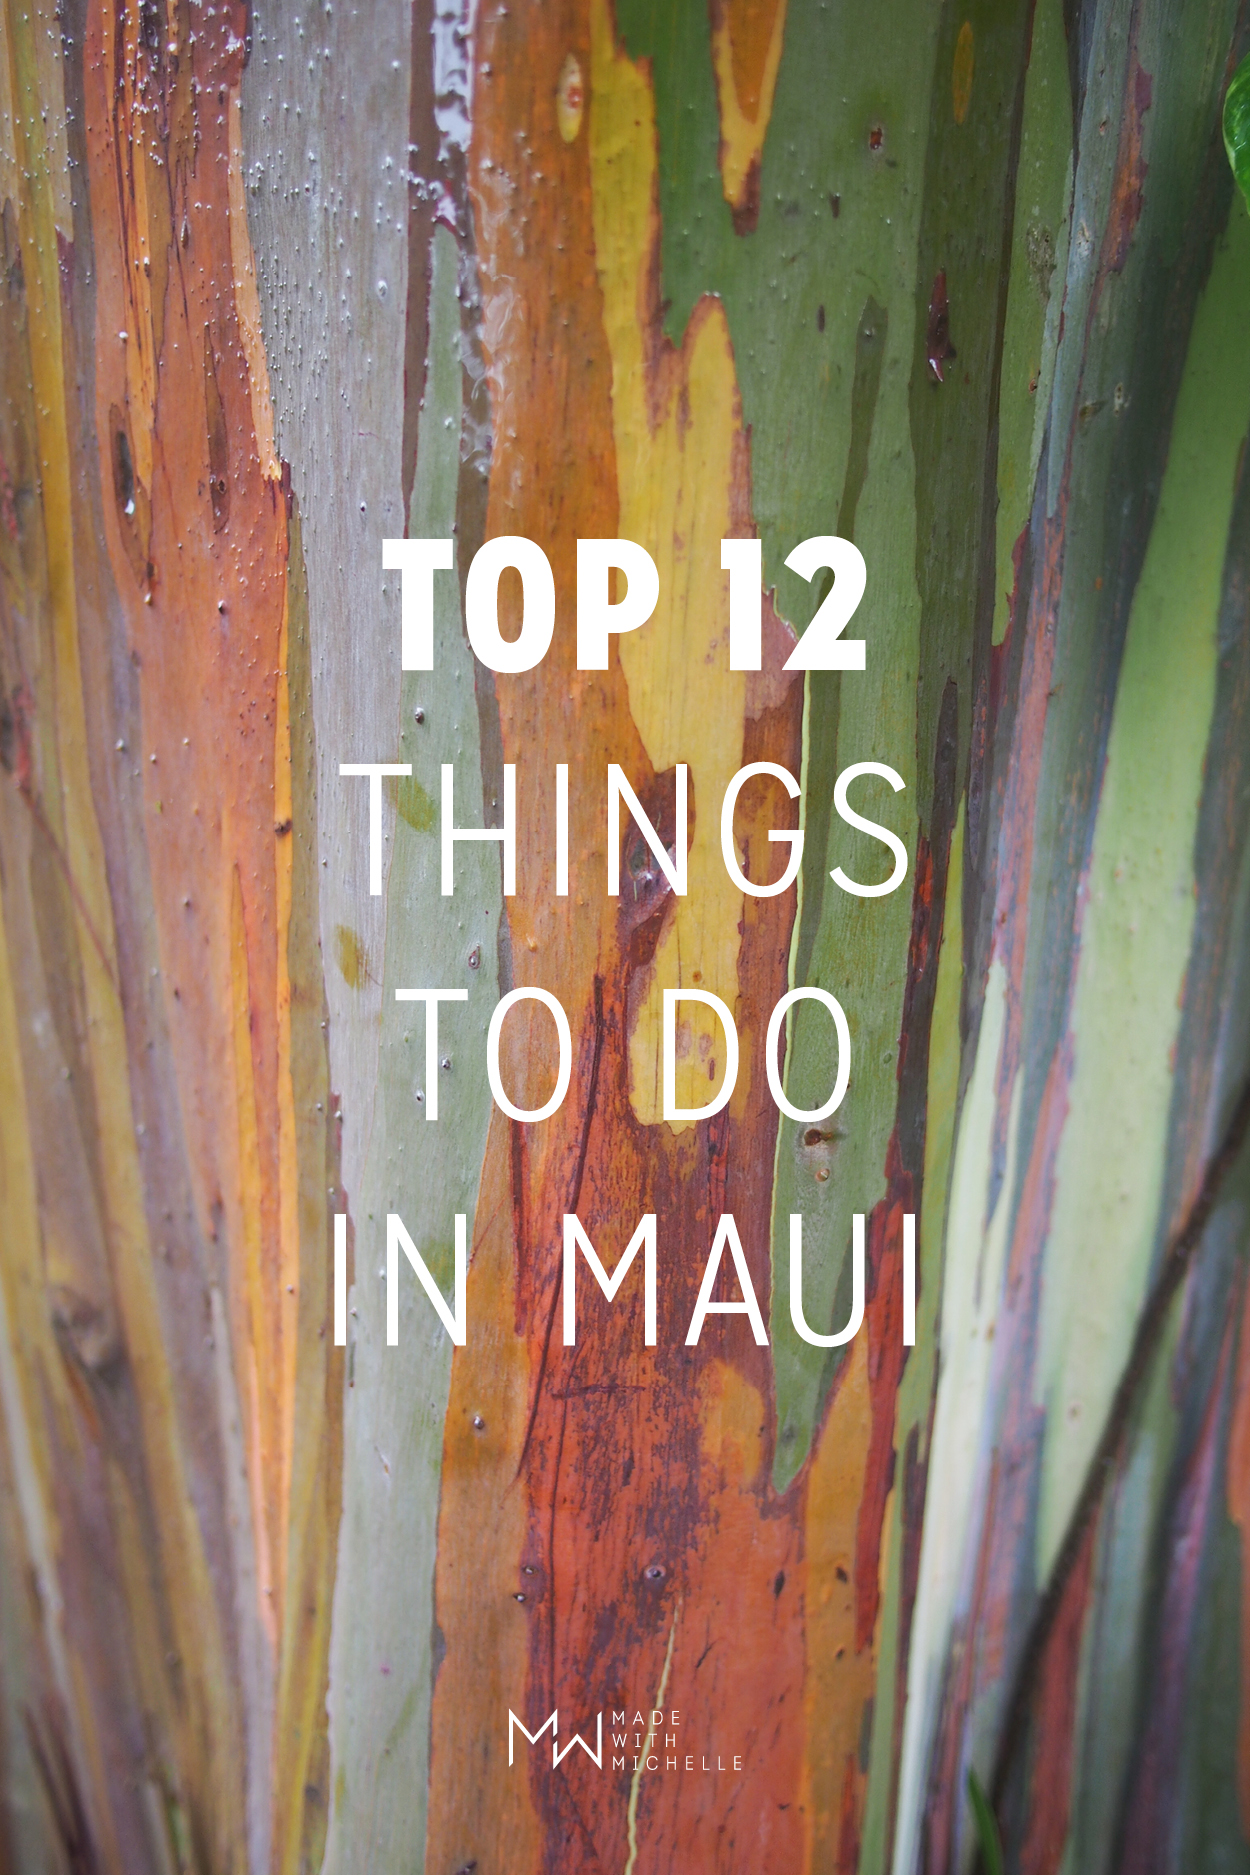 Top 12 Things to do in Maui